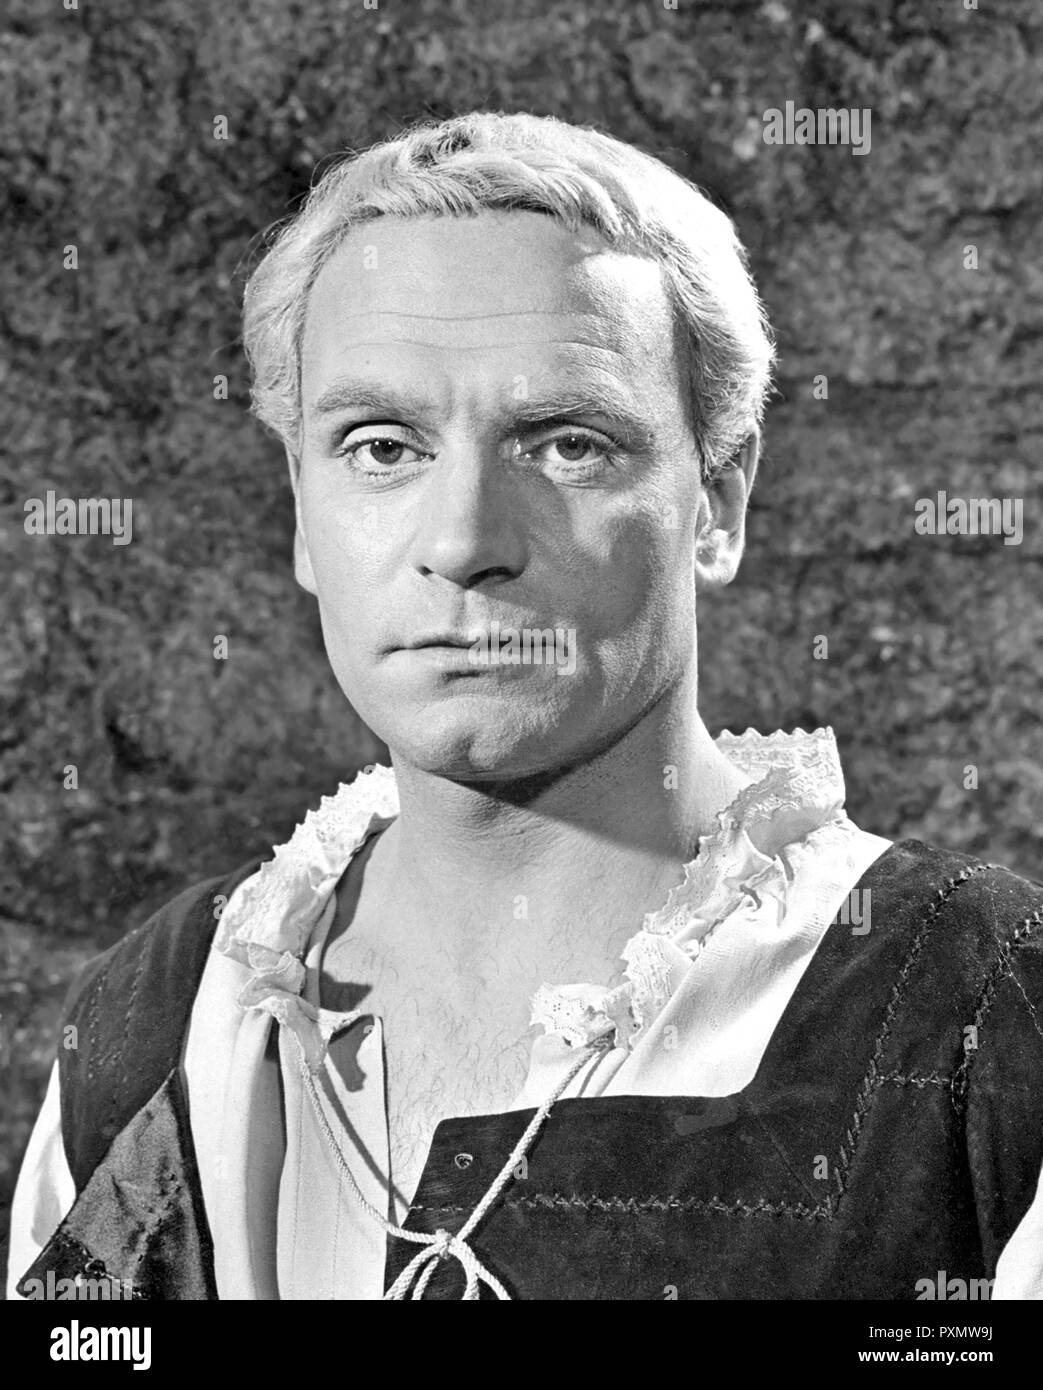 LAURENCE OLIVIER (1907-1989) English actor as Hamlet in the 1948 Rank film - Stock Image